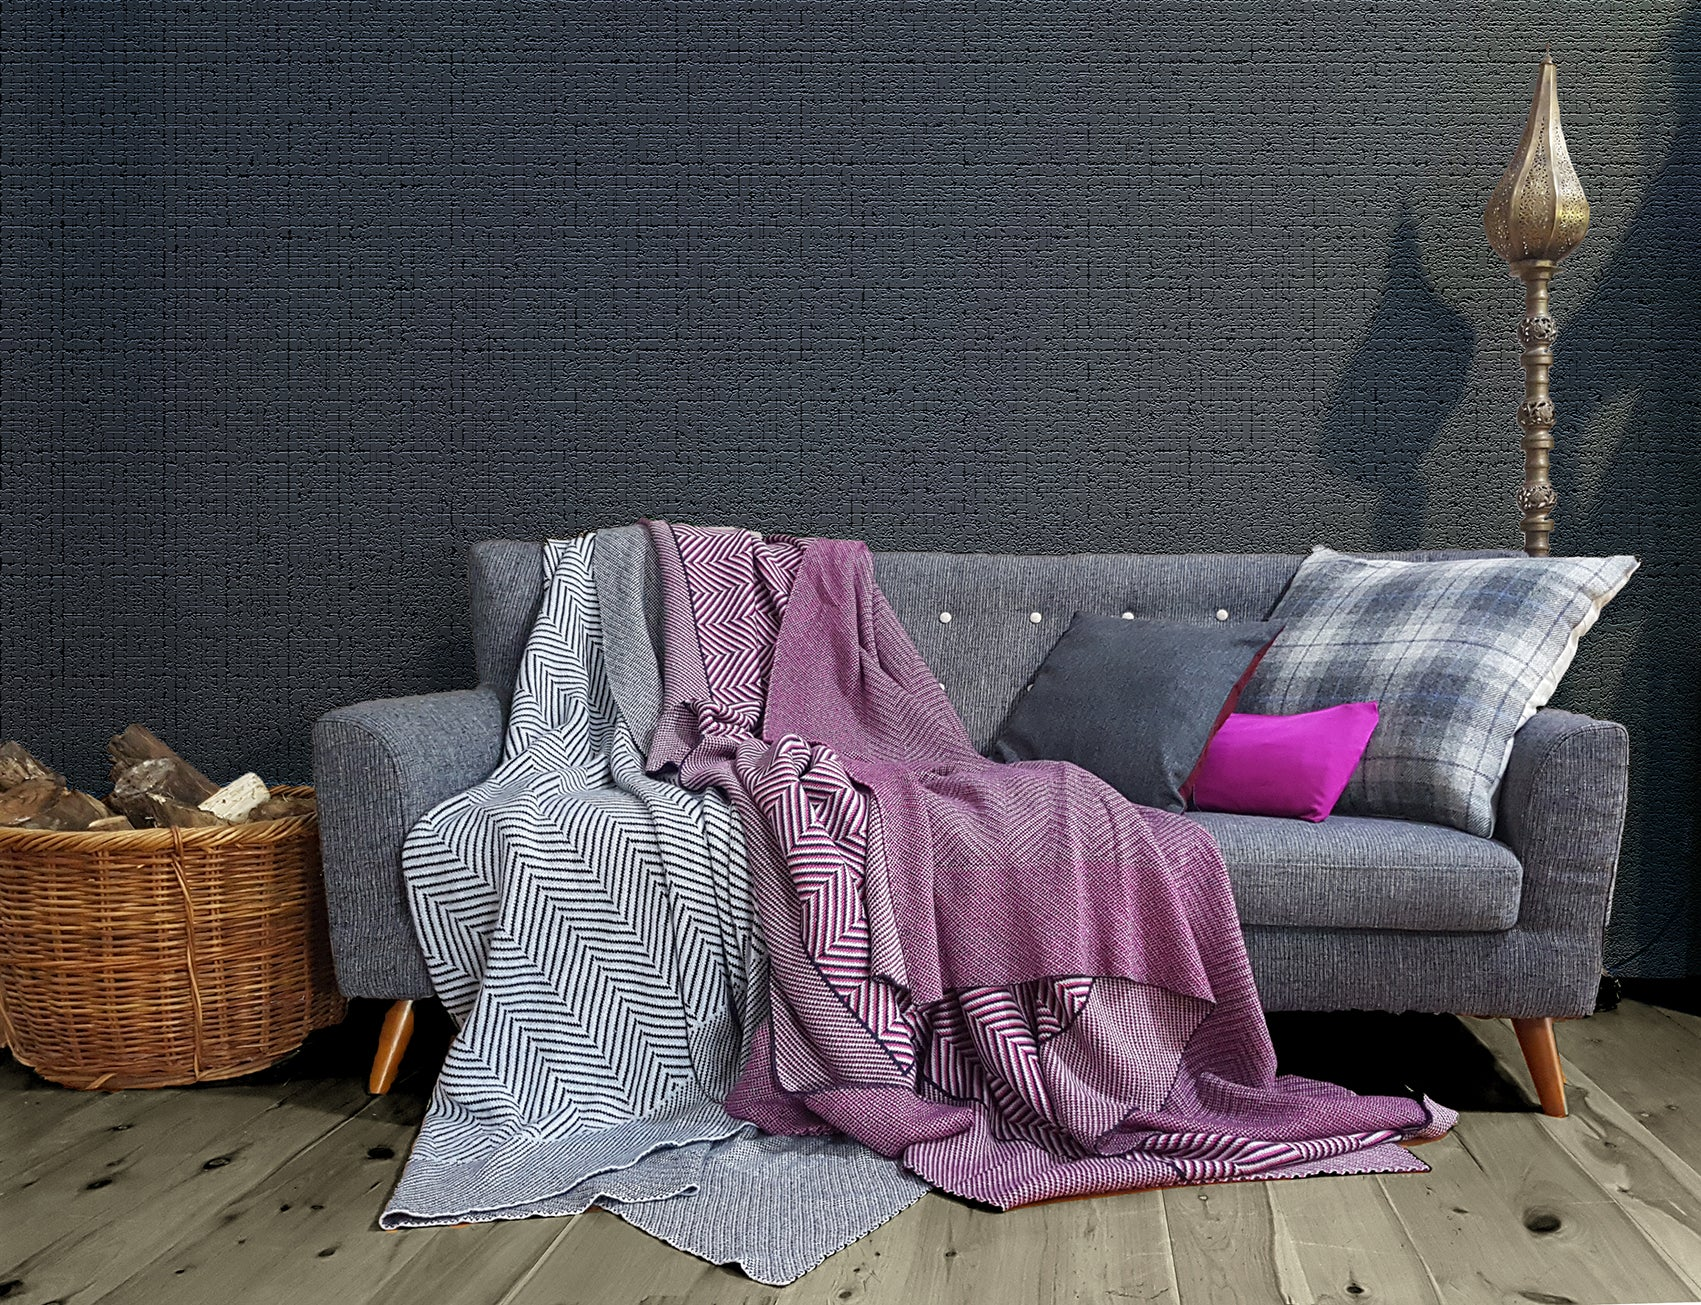 Walls & Hills Sample - Blankets & Throws